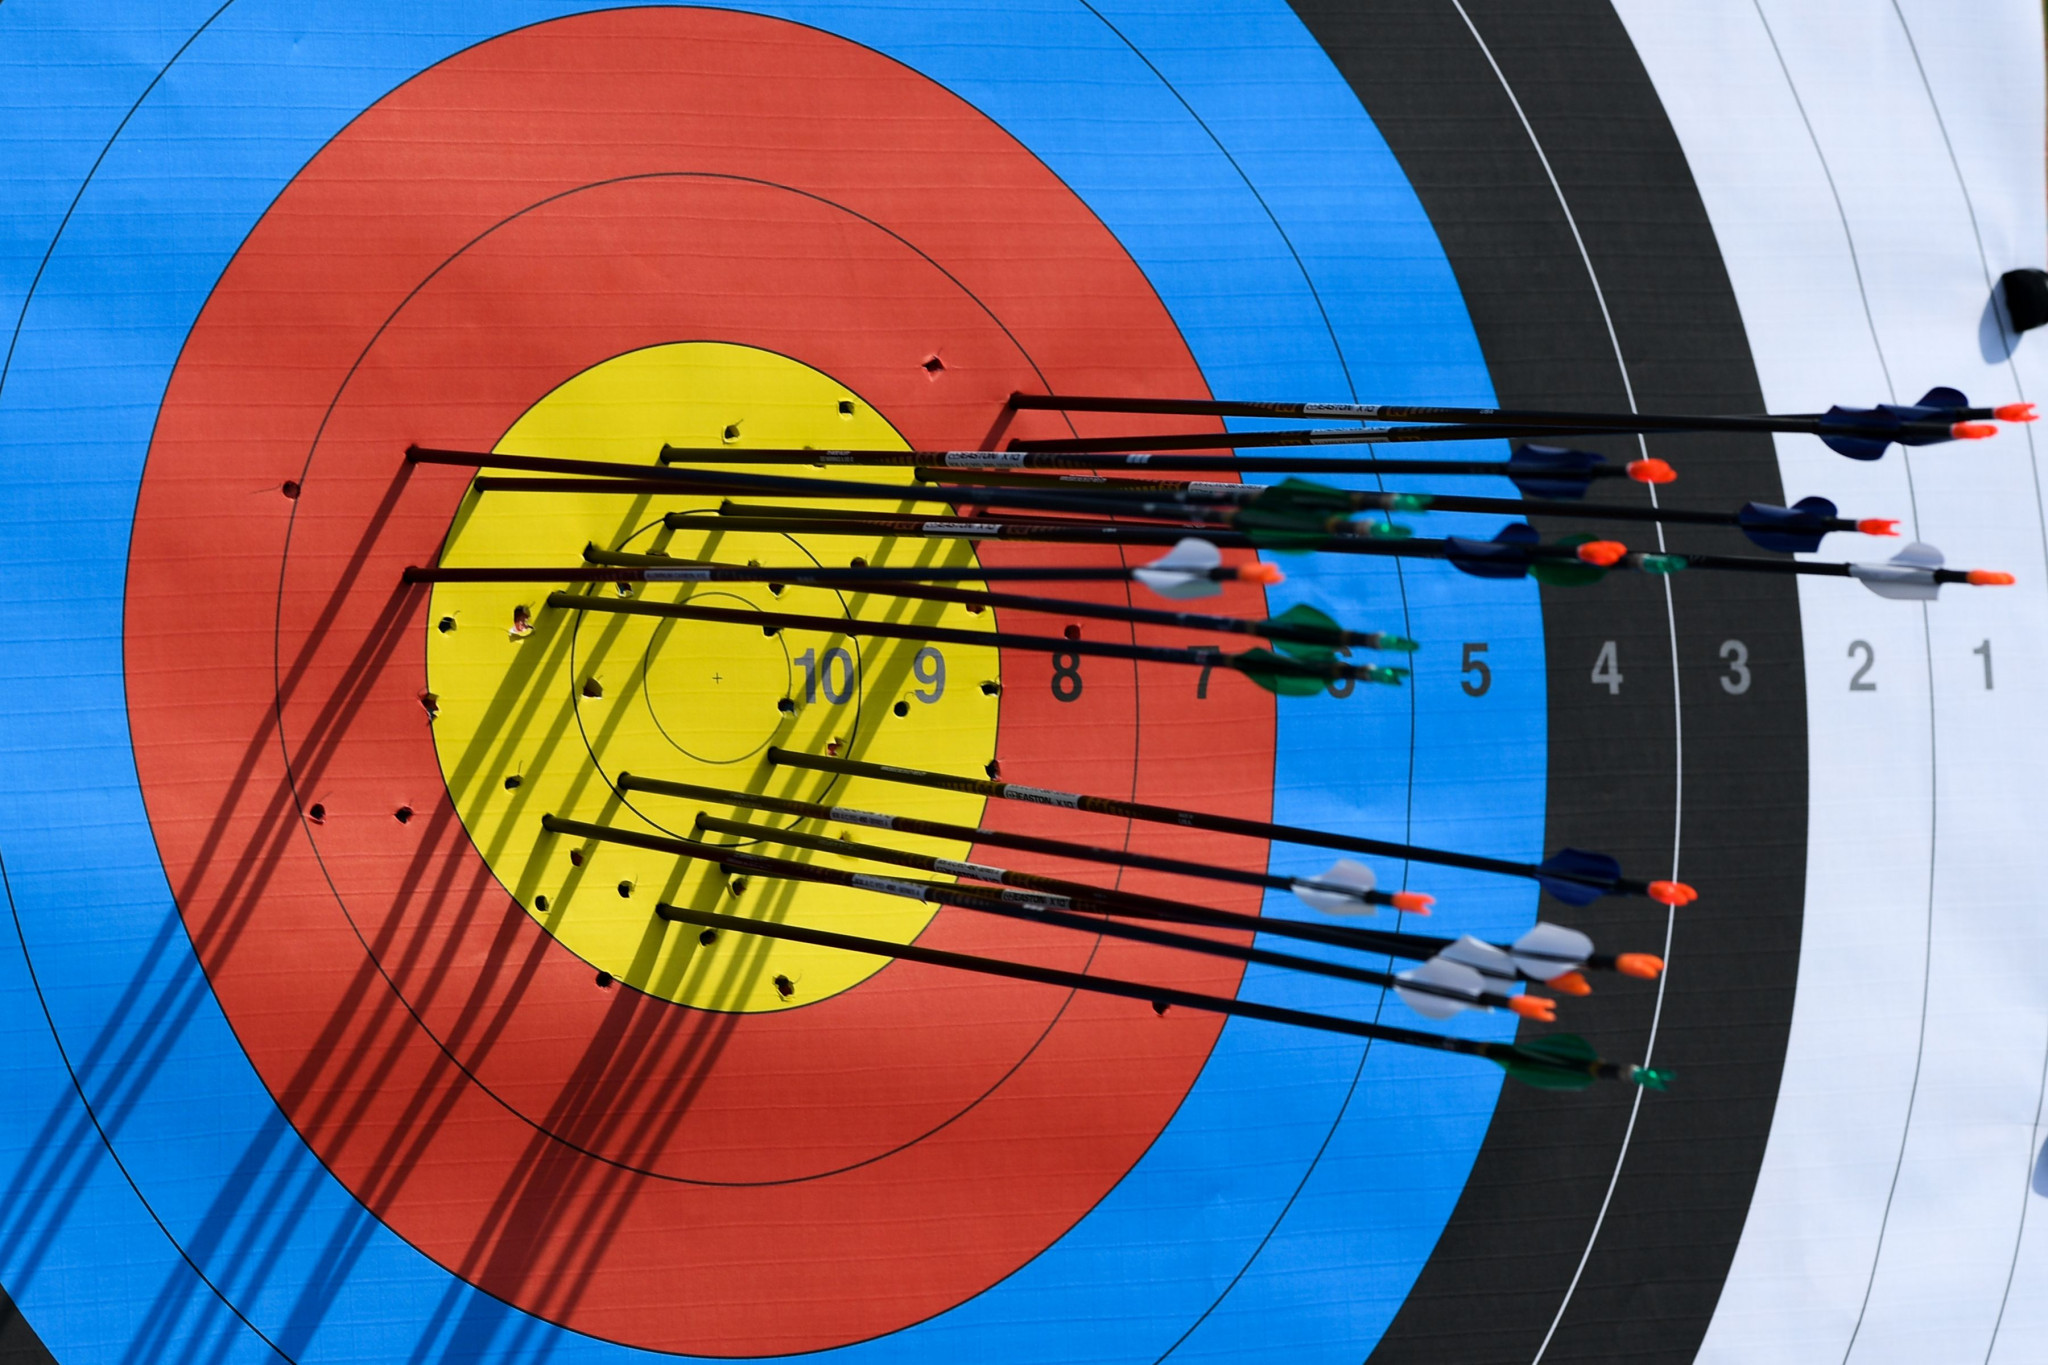 Exclusive: World Archery reschedules $2.5 million payment with Credit Suisse until after postponed Tokyo 2020 Olympics